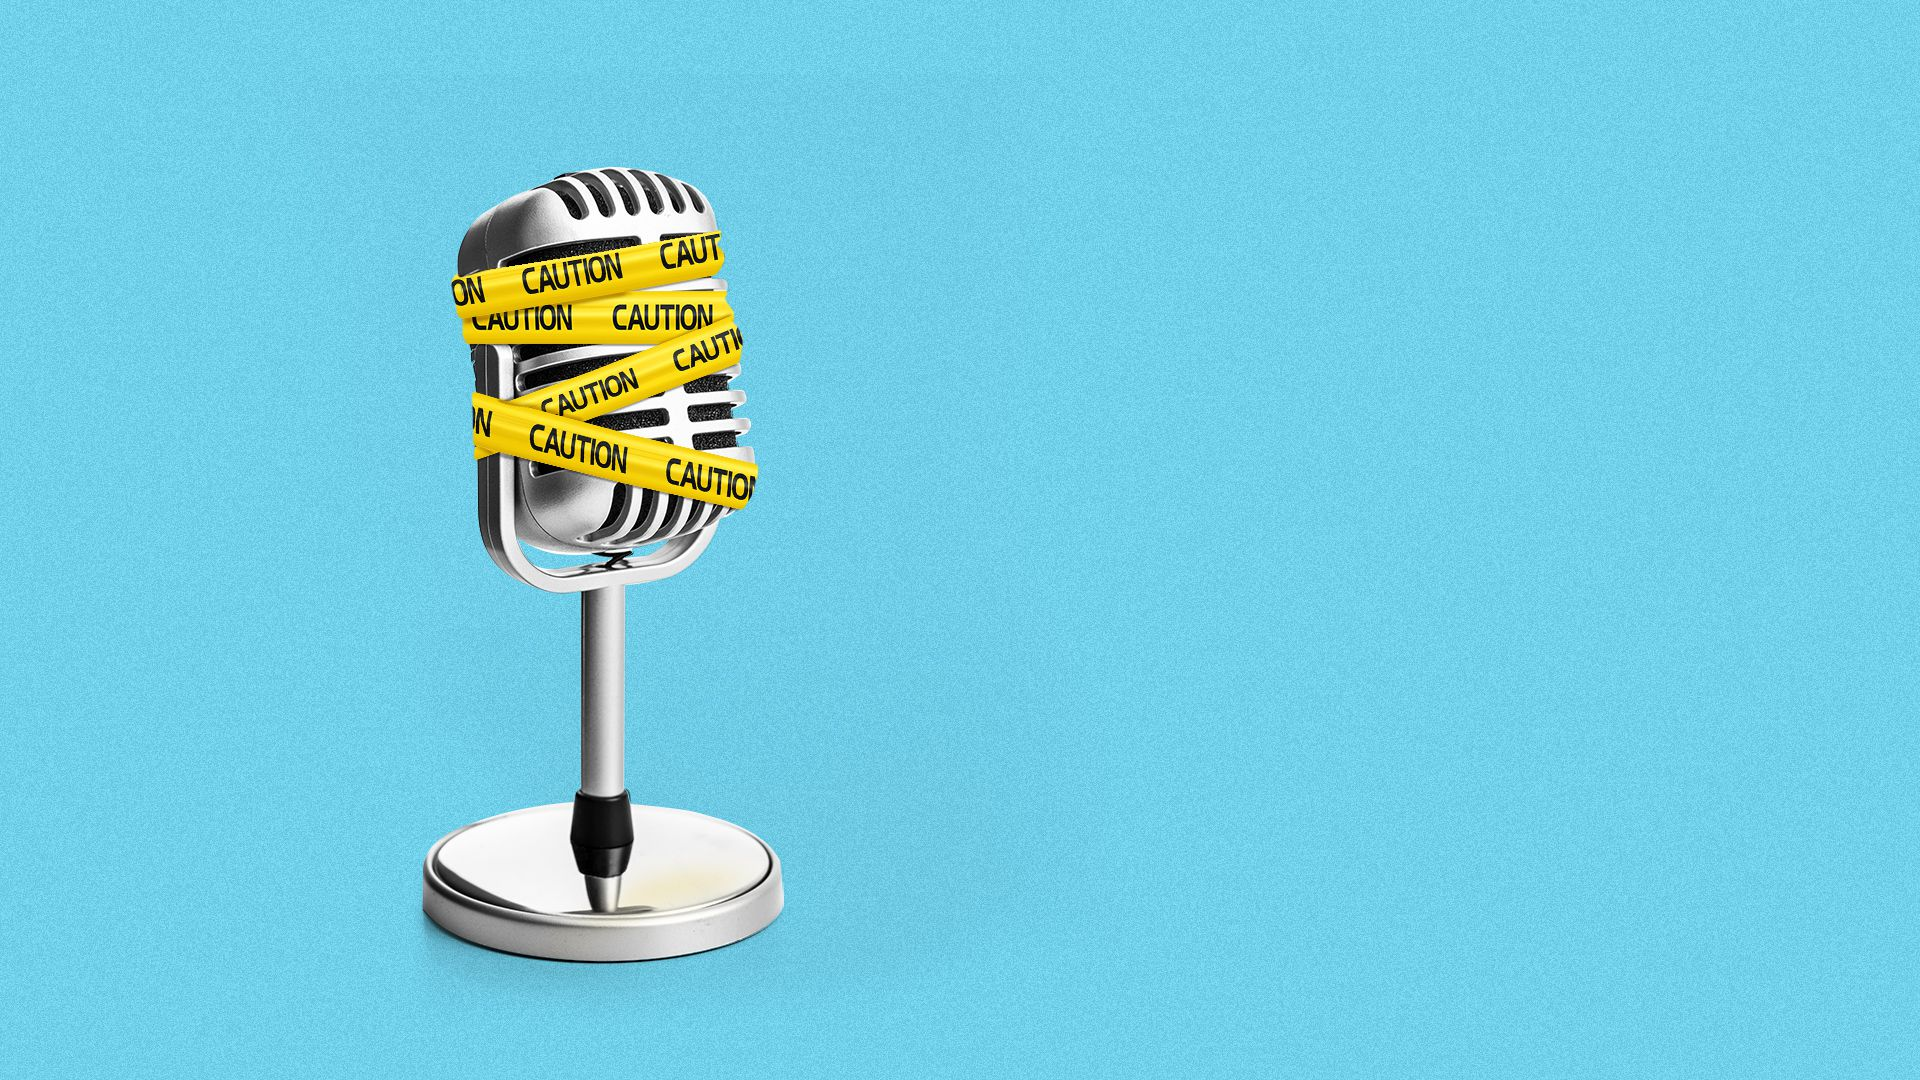 Illustration of a retro microphone with caution tape over it